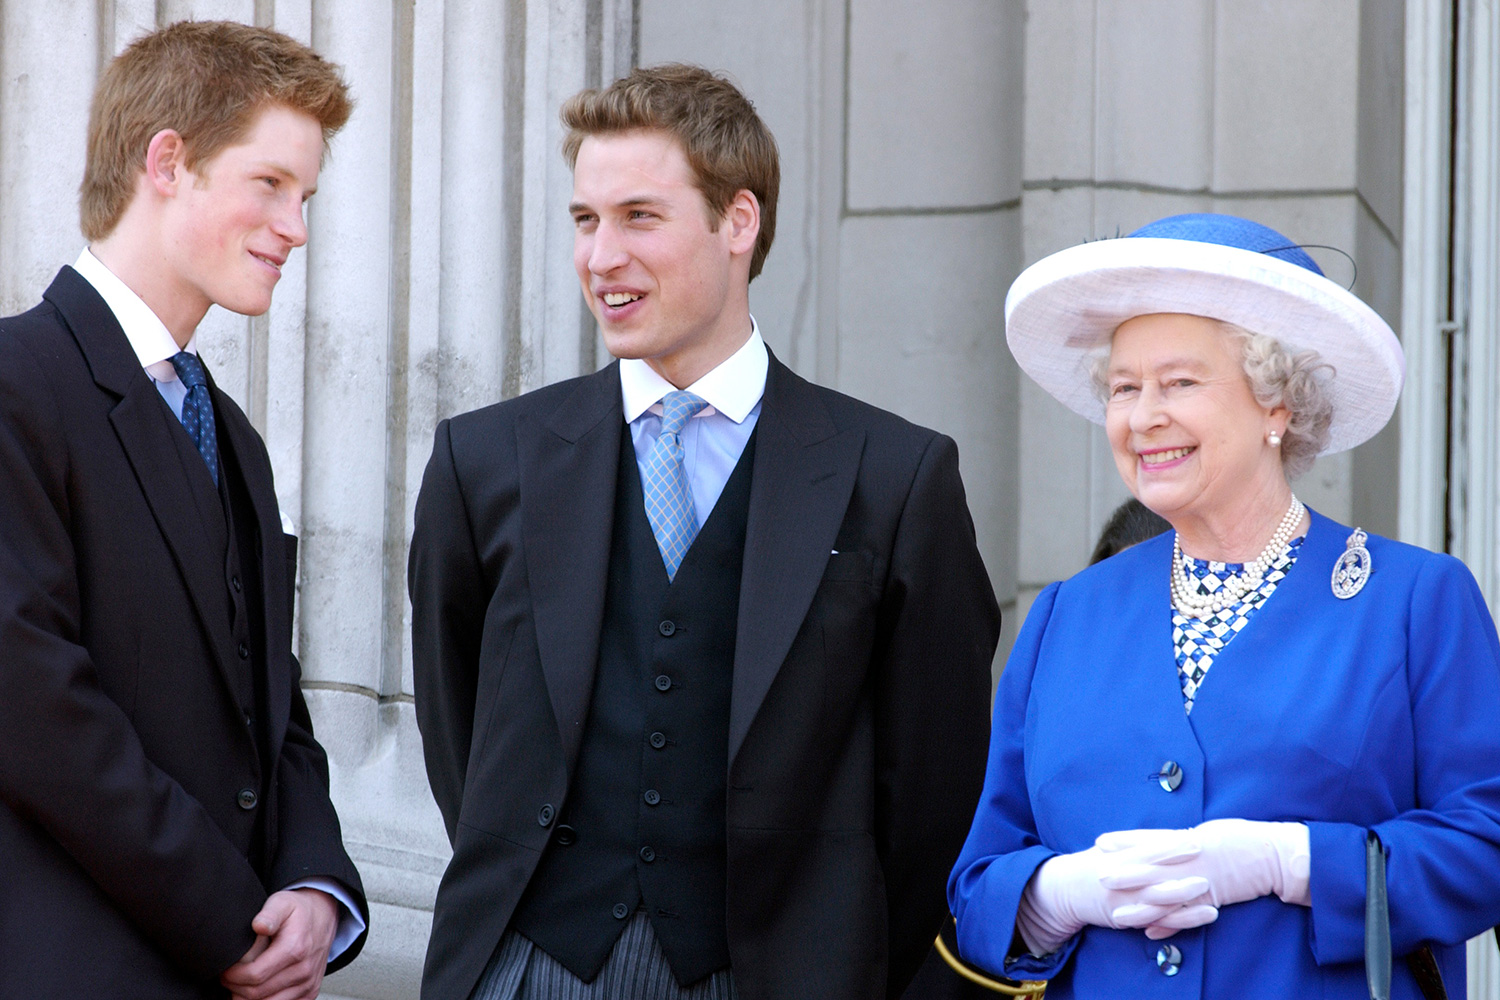 Queen Elizabeth II Laughs With Her Grandsons Prince William And Prince Harry On The Balcony Of Buckingham Palace After The Trooping The Colour Parade